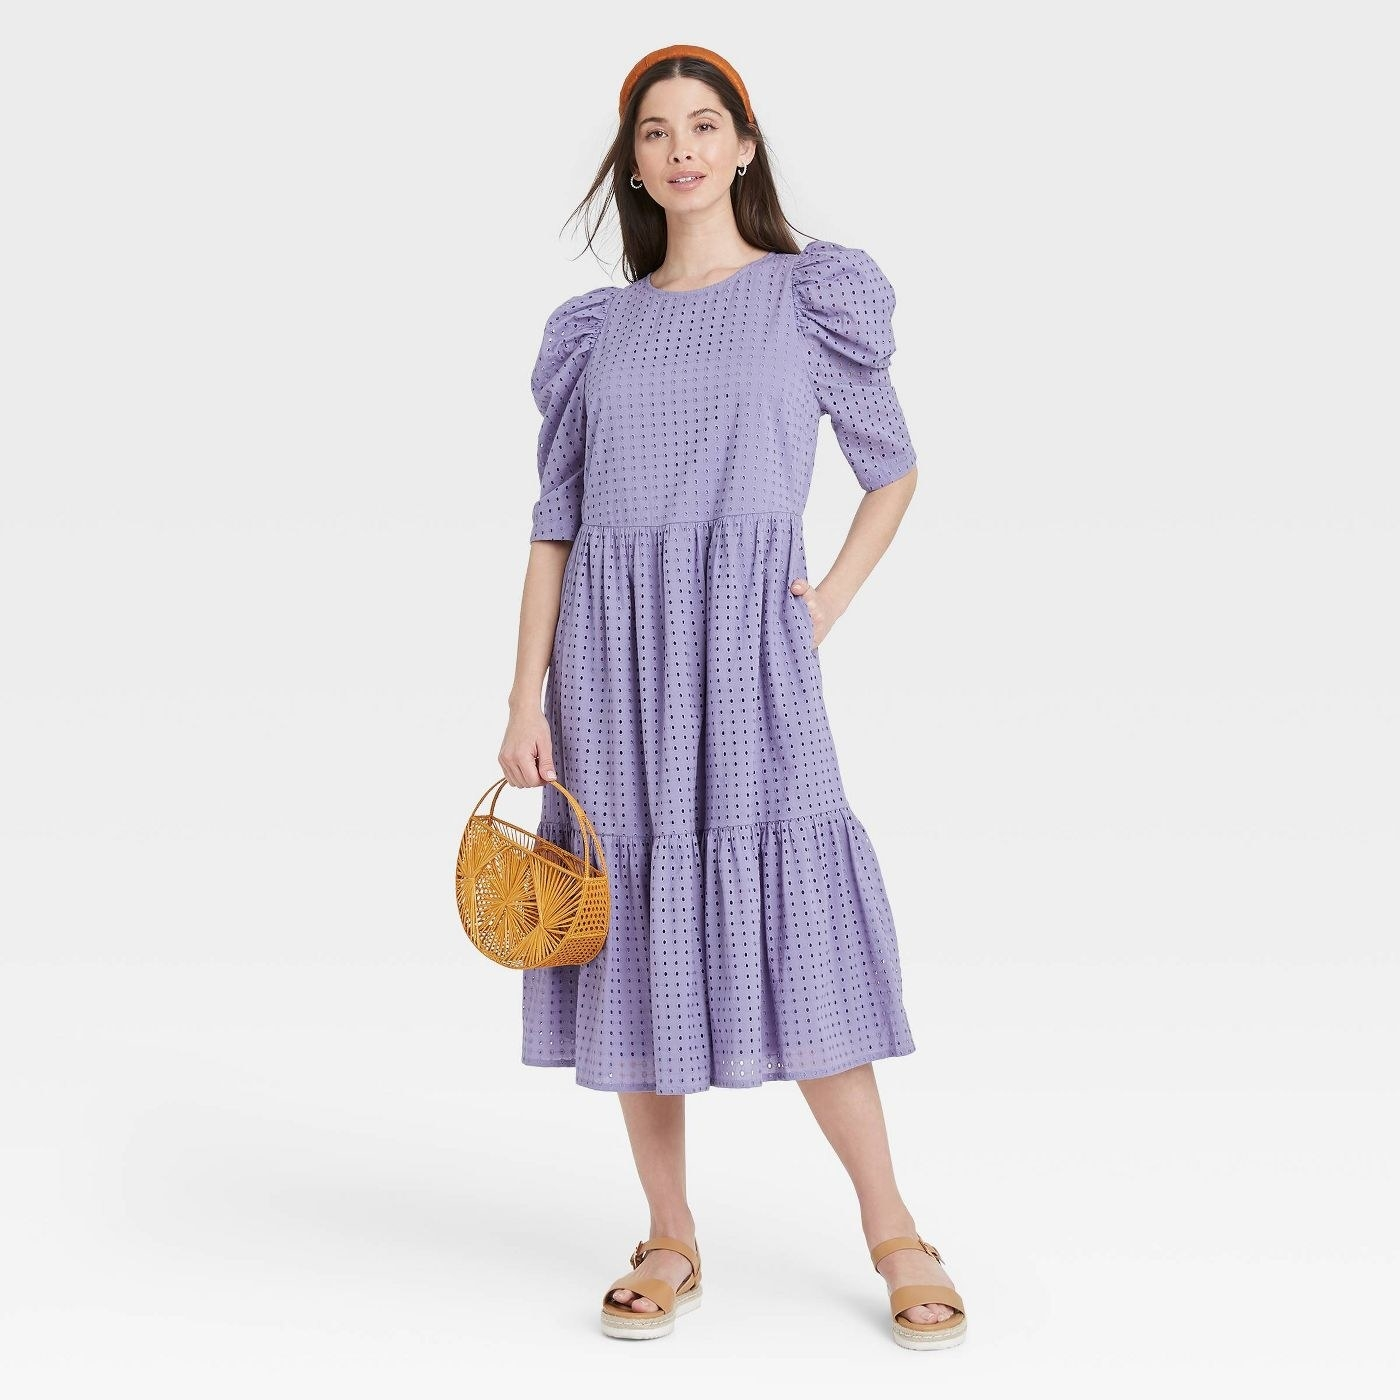 Model wearing lilac midi dress with 3/4 sleeves